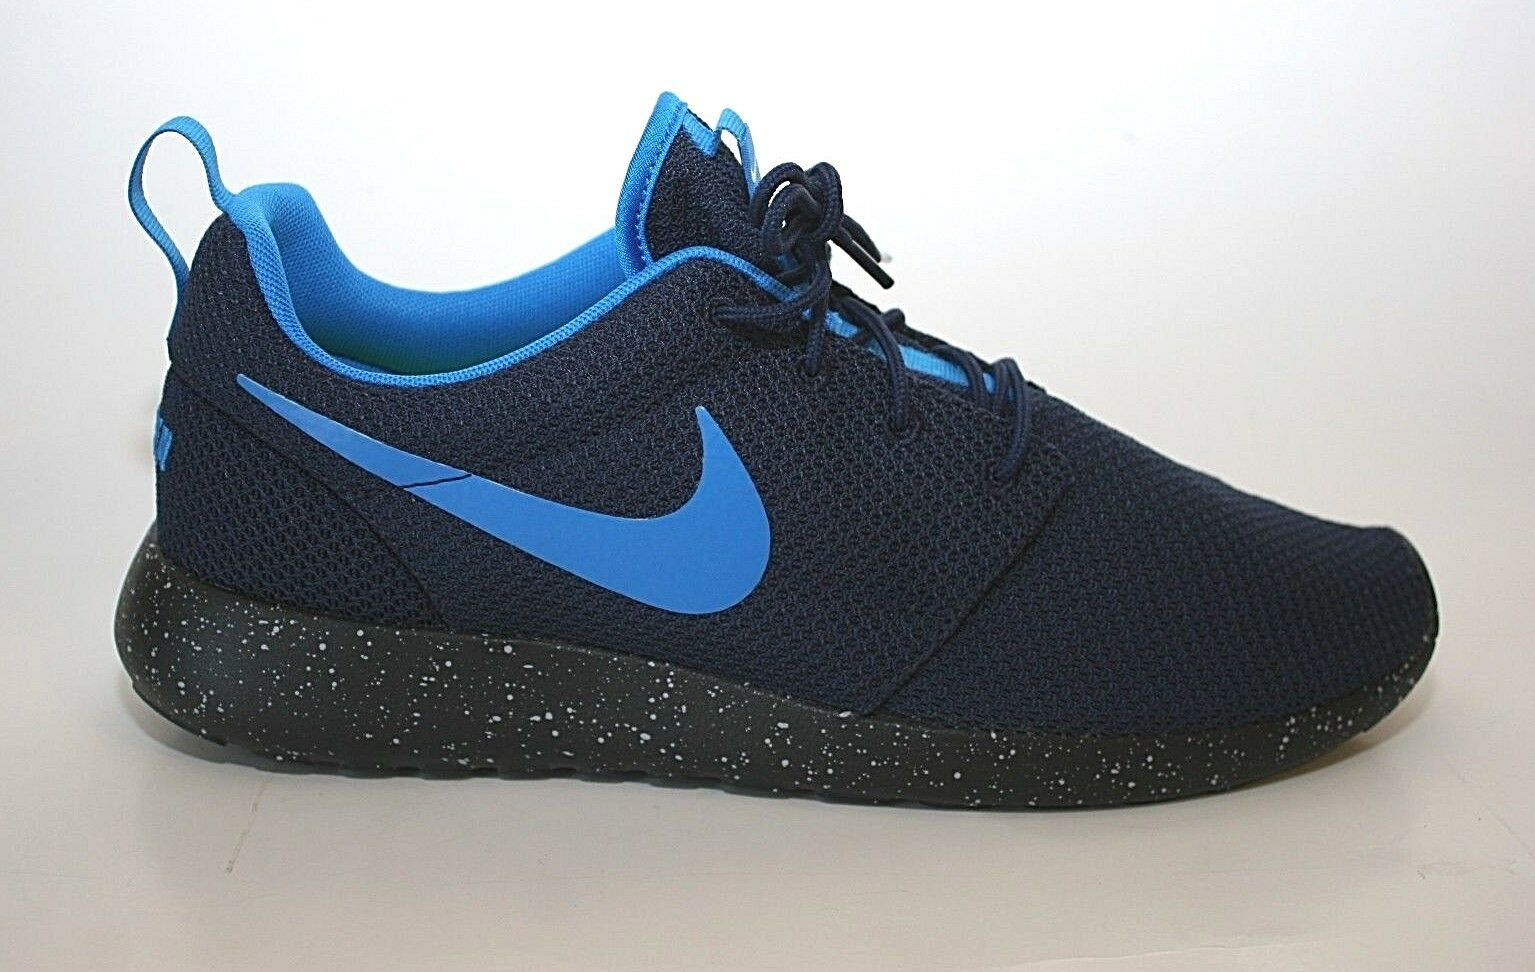 The most popular shoes for men and women NEW Nike iD CUSTOM Roshe One Essential Lightweight Shoes  943711 991 Blue 10.5